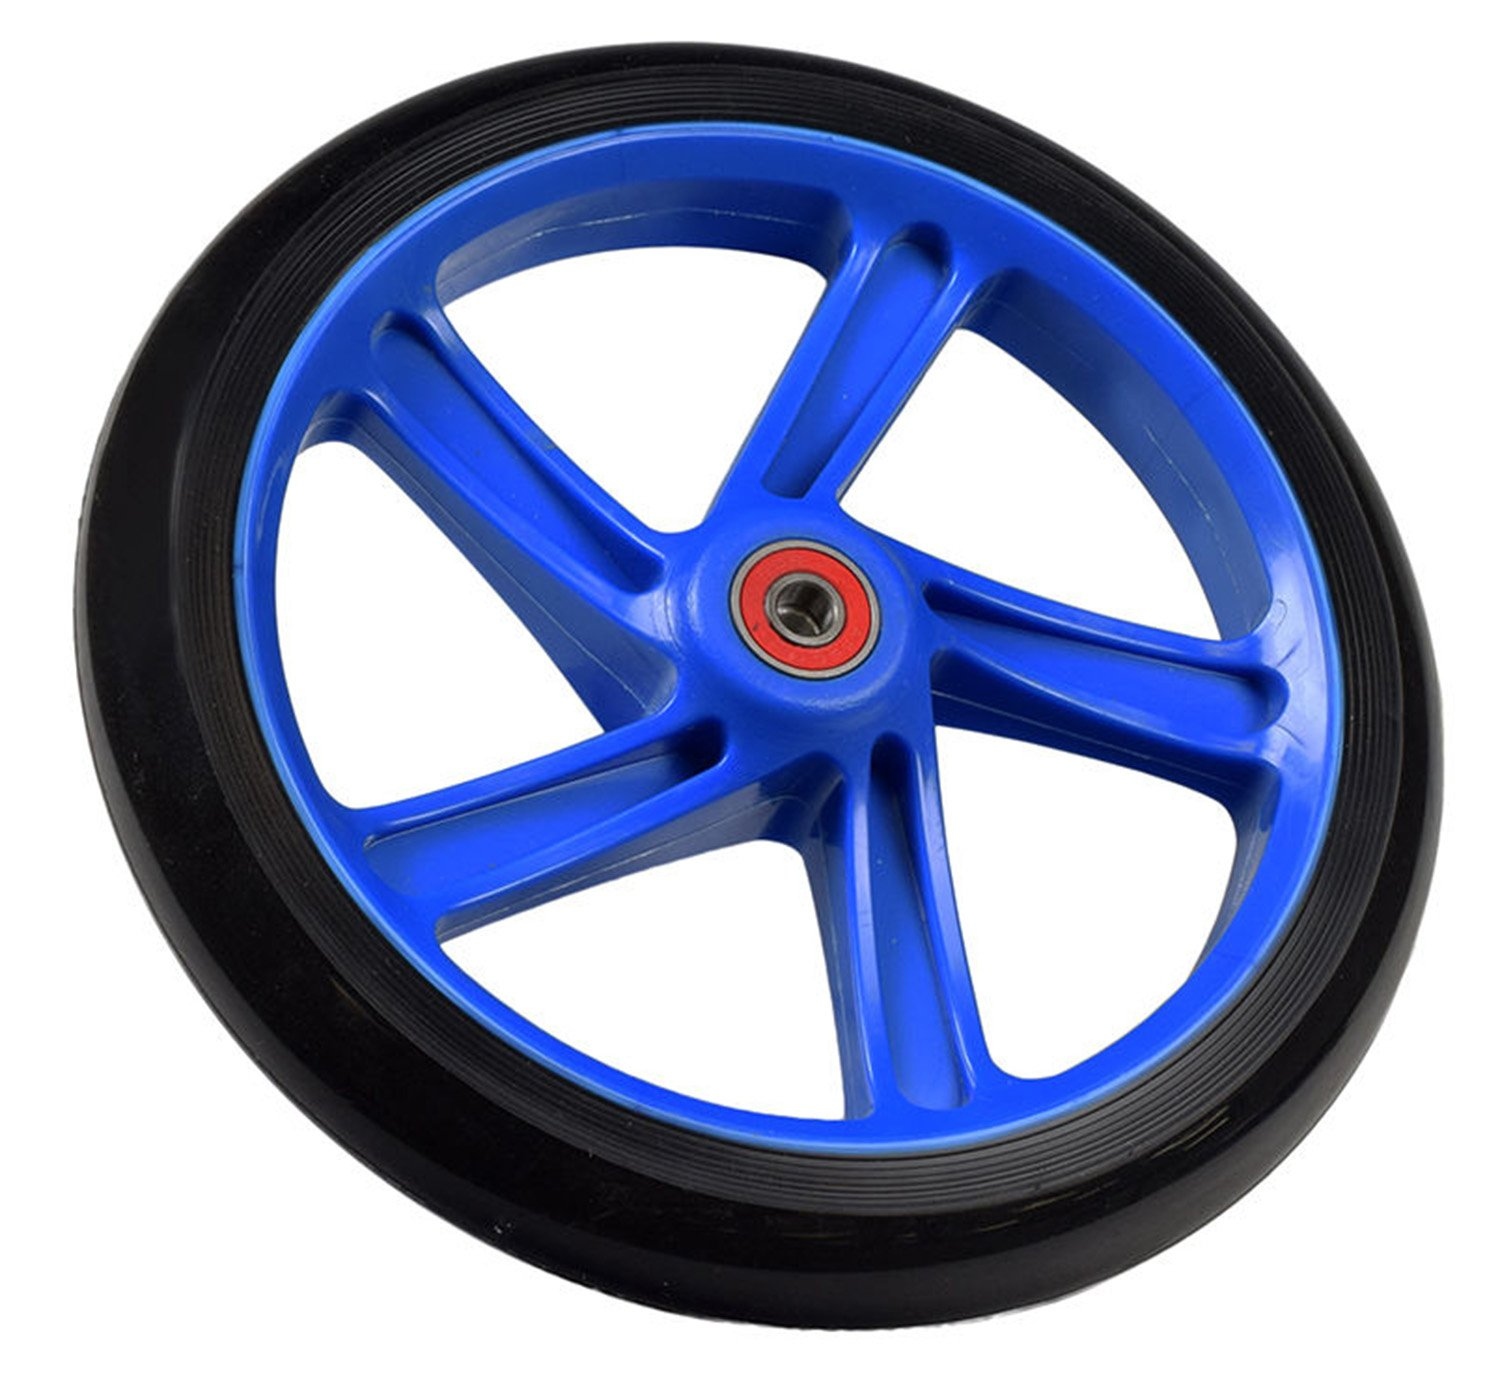 Replacement Wheel for the Razor A5 Lux Kick Scooter 200 mm (8''): Black Wheel with BLUE Hub